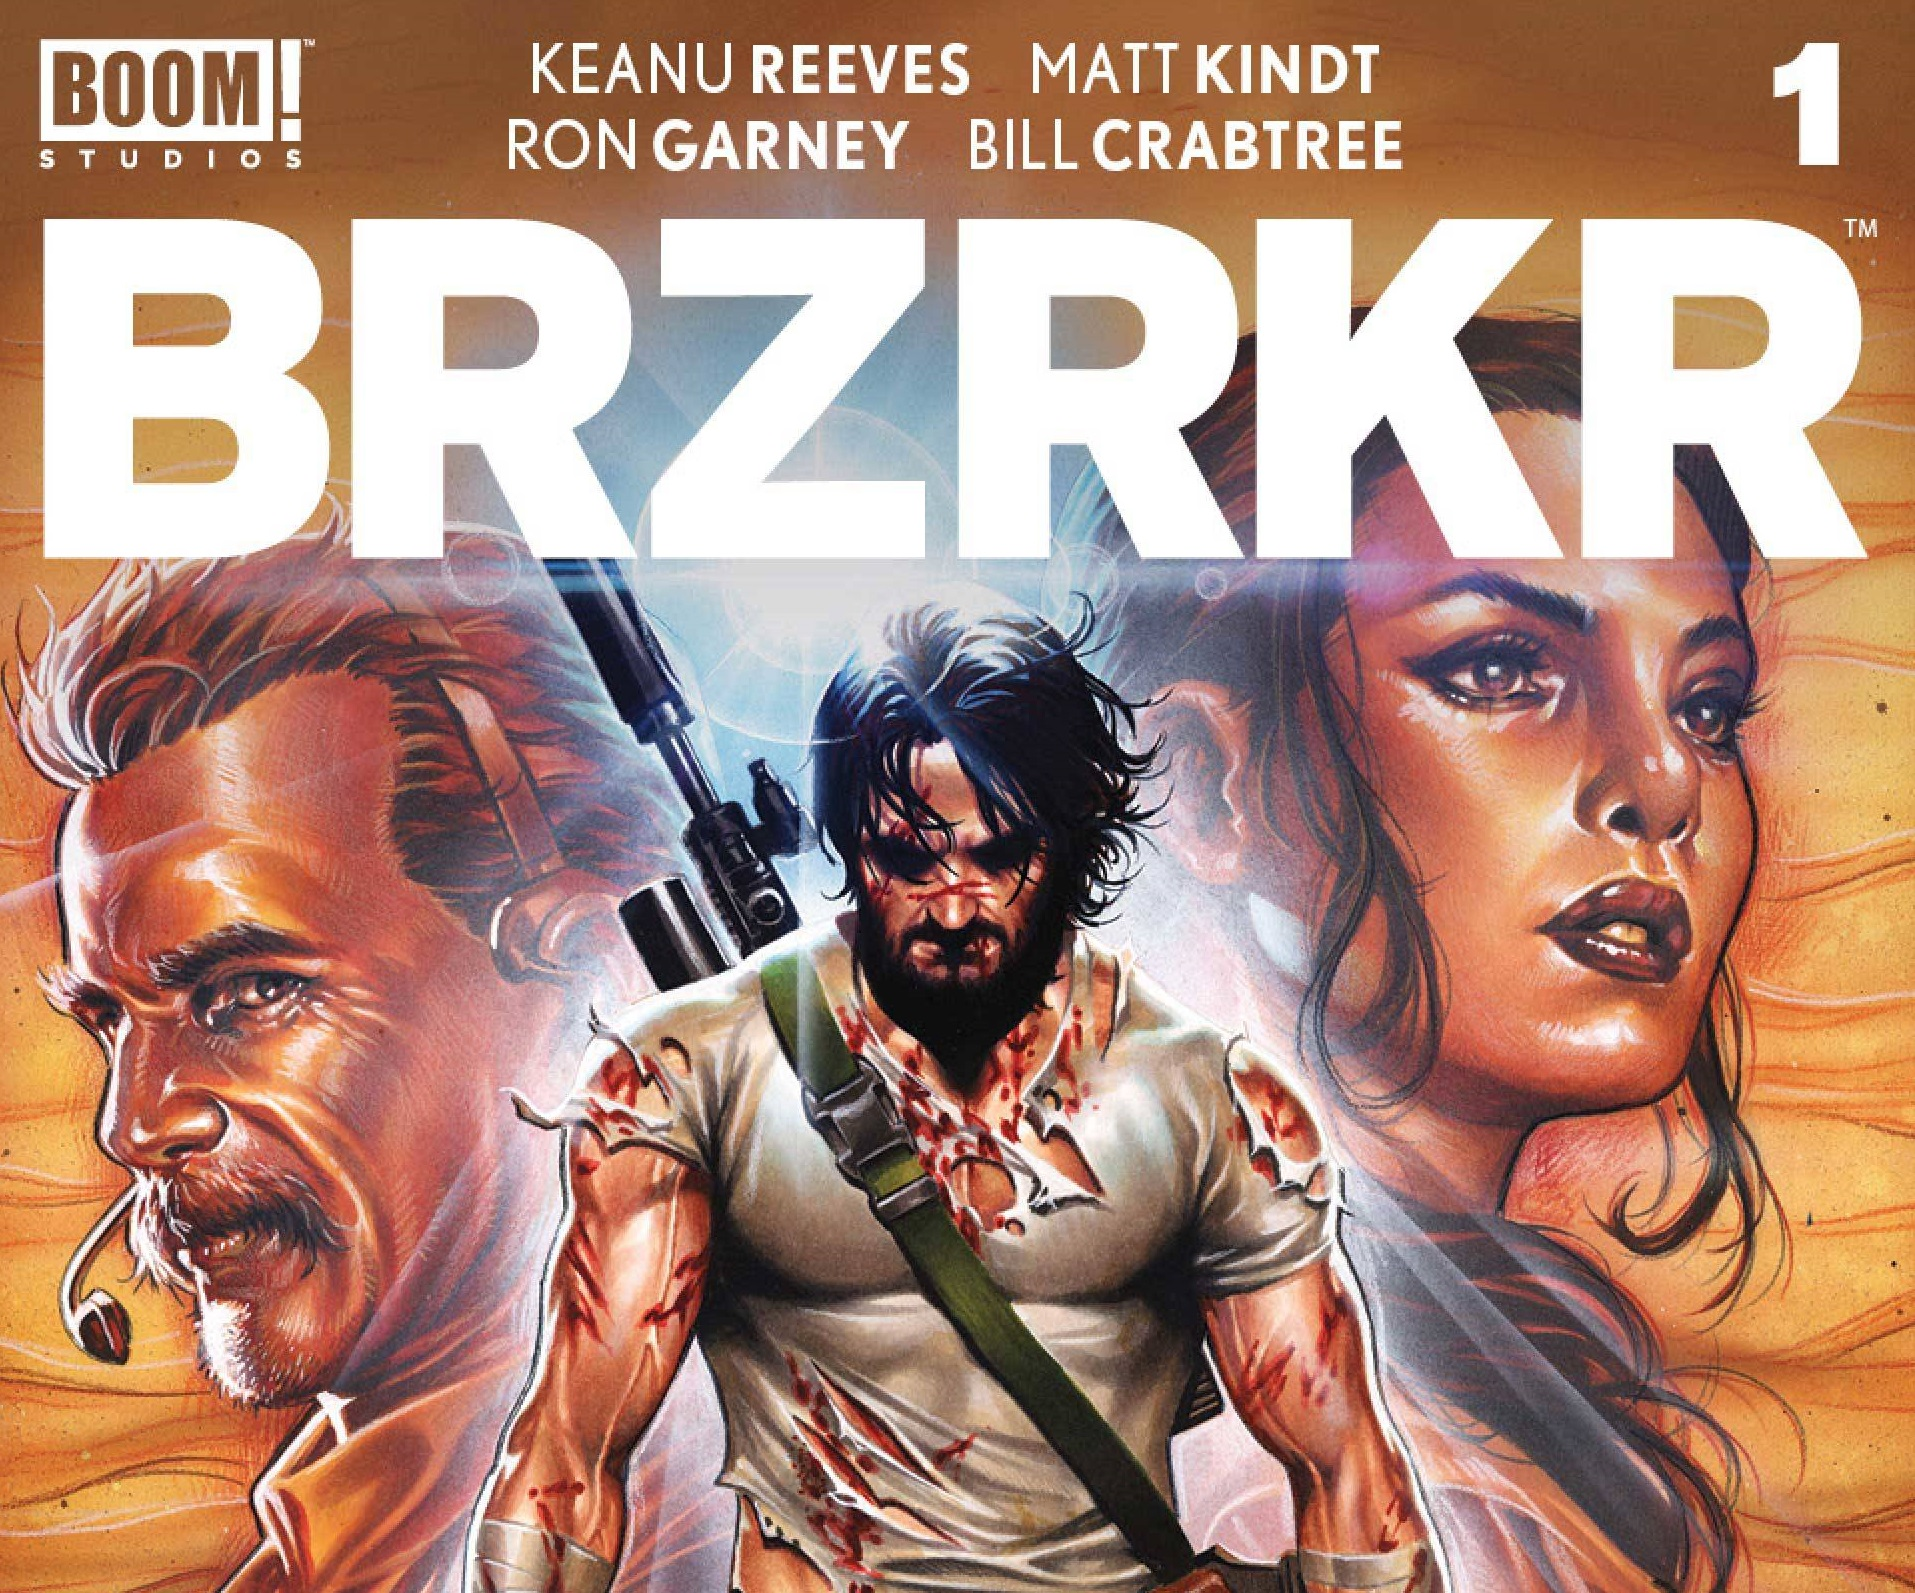 BRZRKR by Keanu Reeves